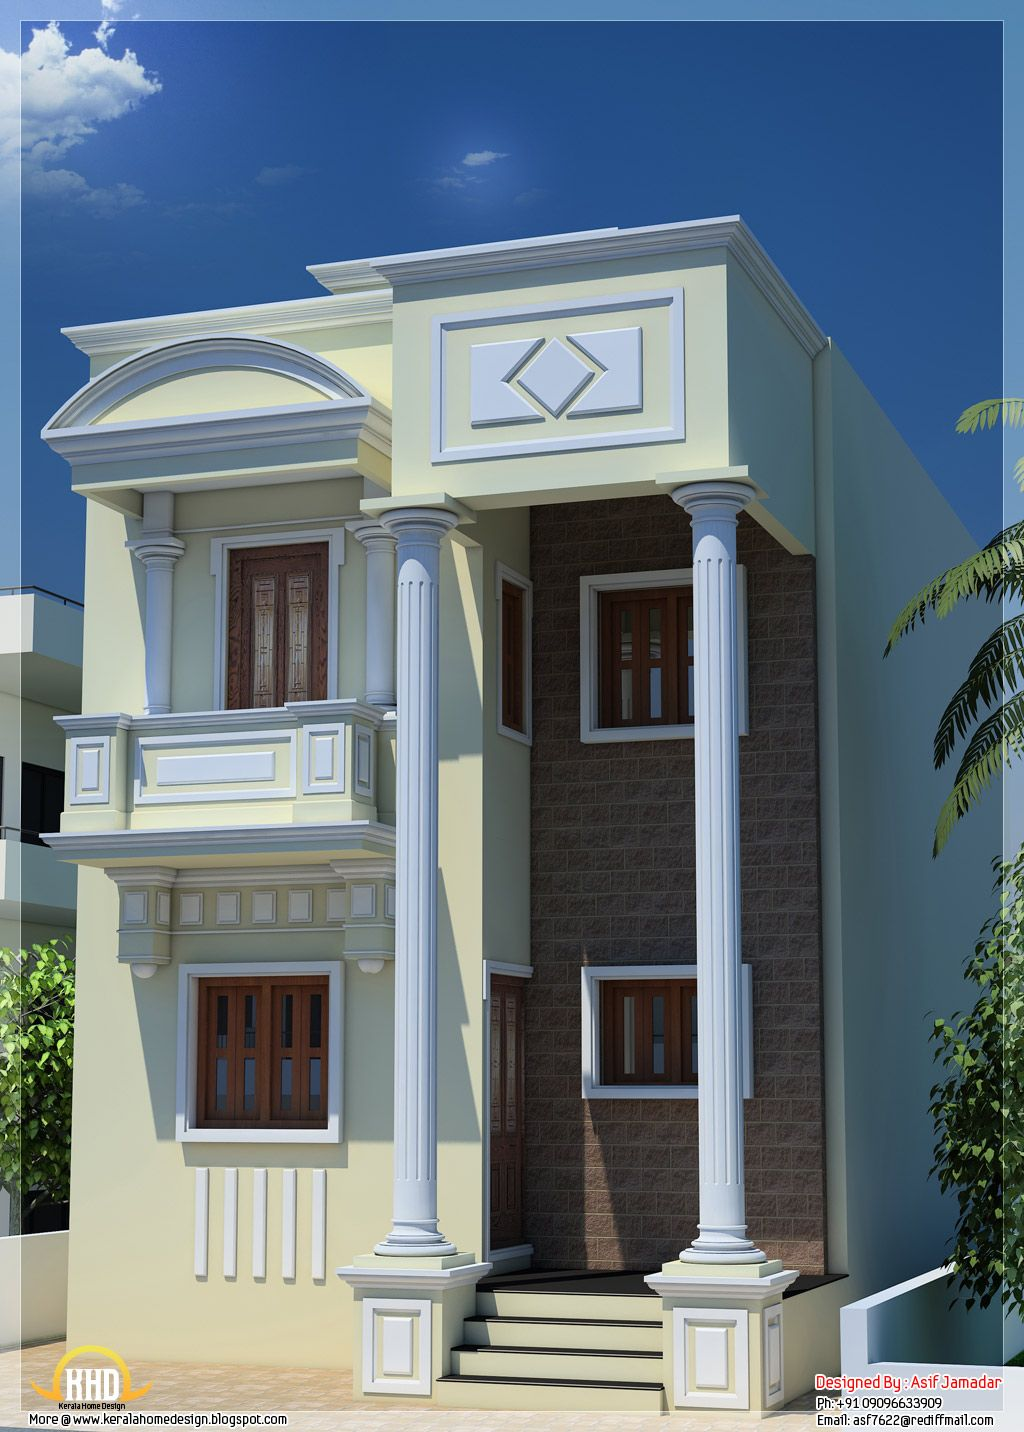 homes design in india - Homes Design In India